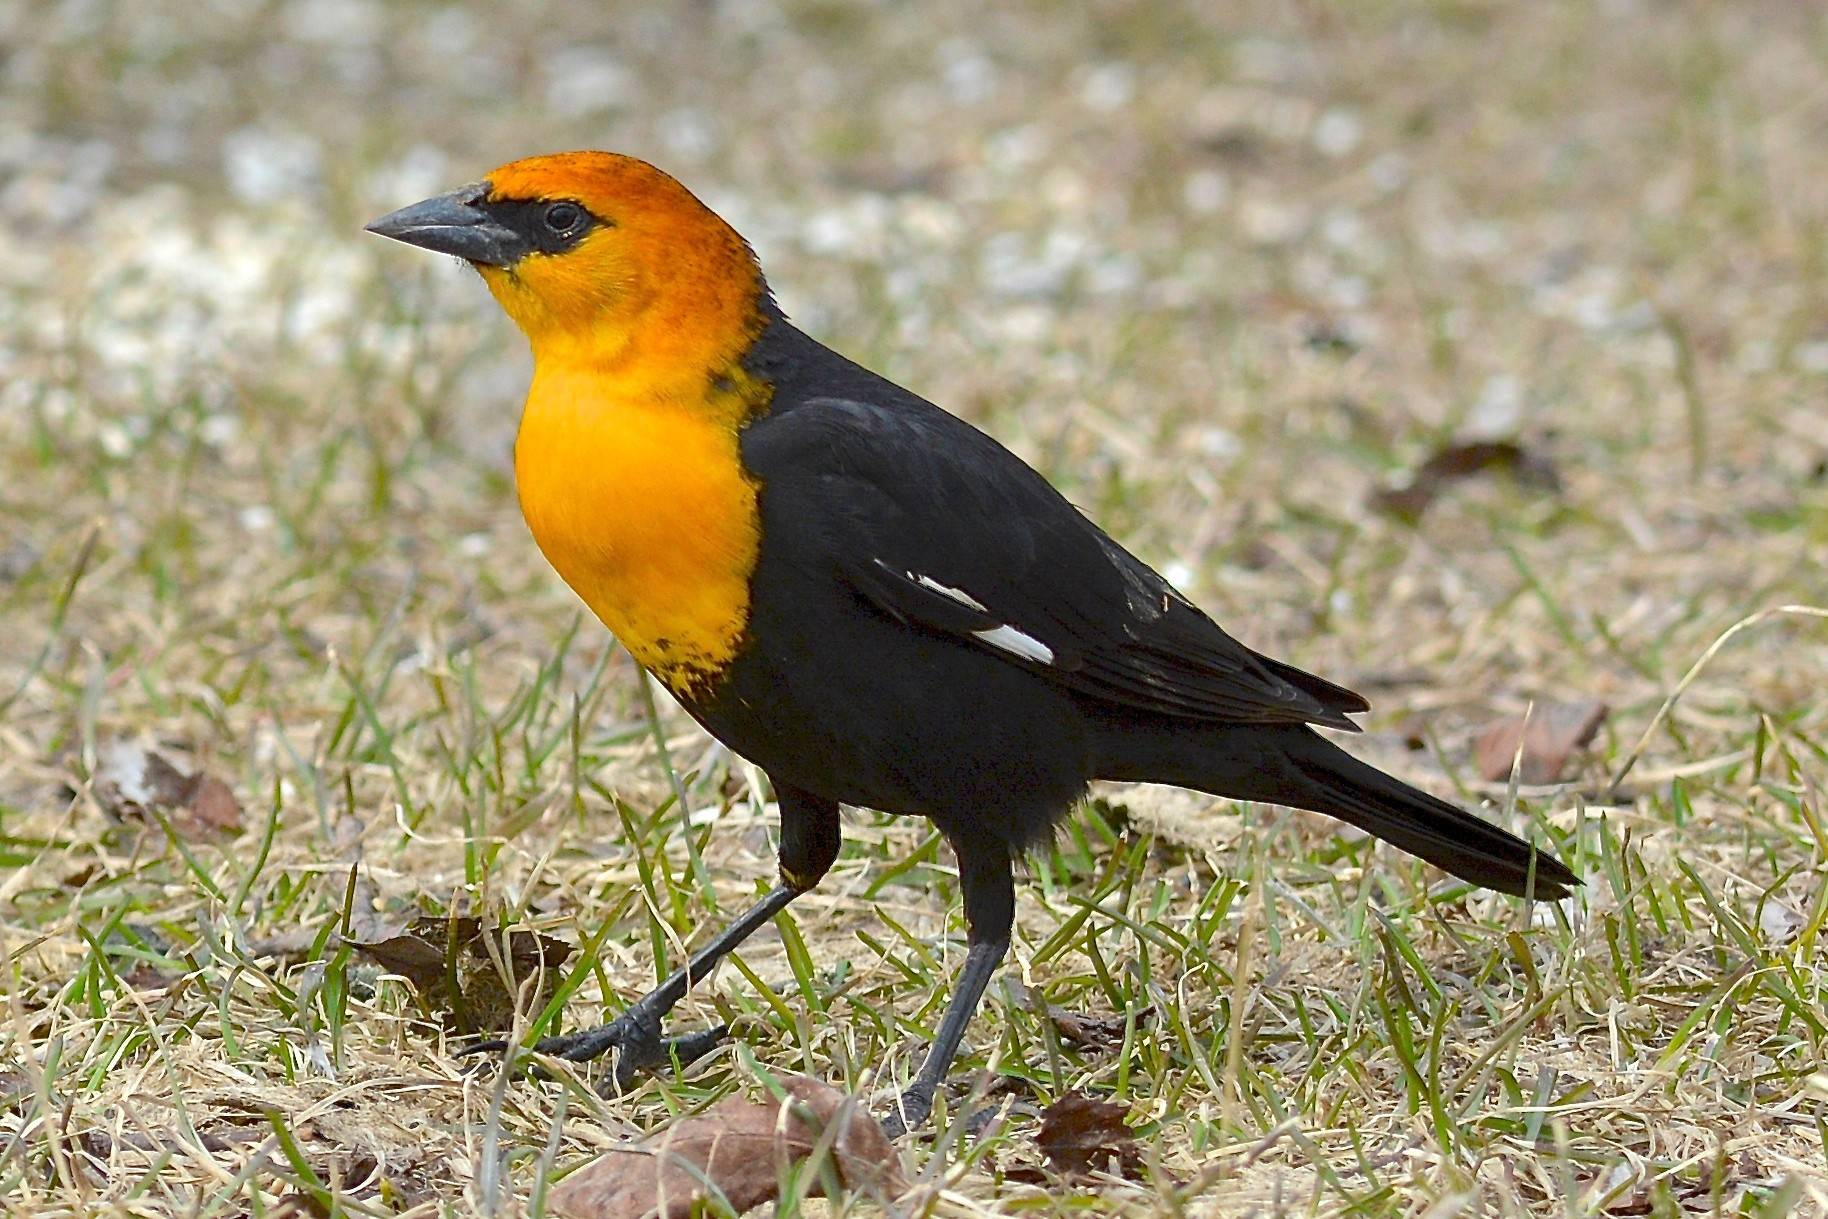 Yellow-headed blackbird, a wetland species rarely spotted in DuPage, appears to be thriving at Hackmatack National Wildlife Refuge.